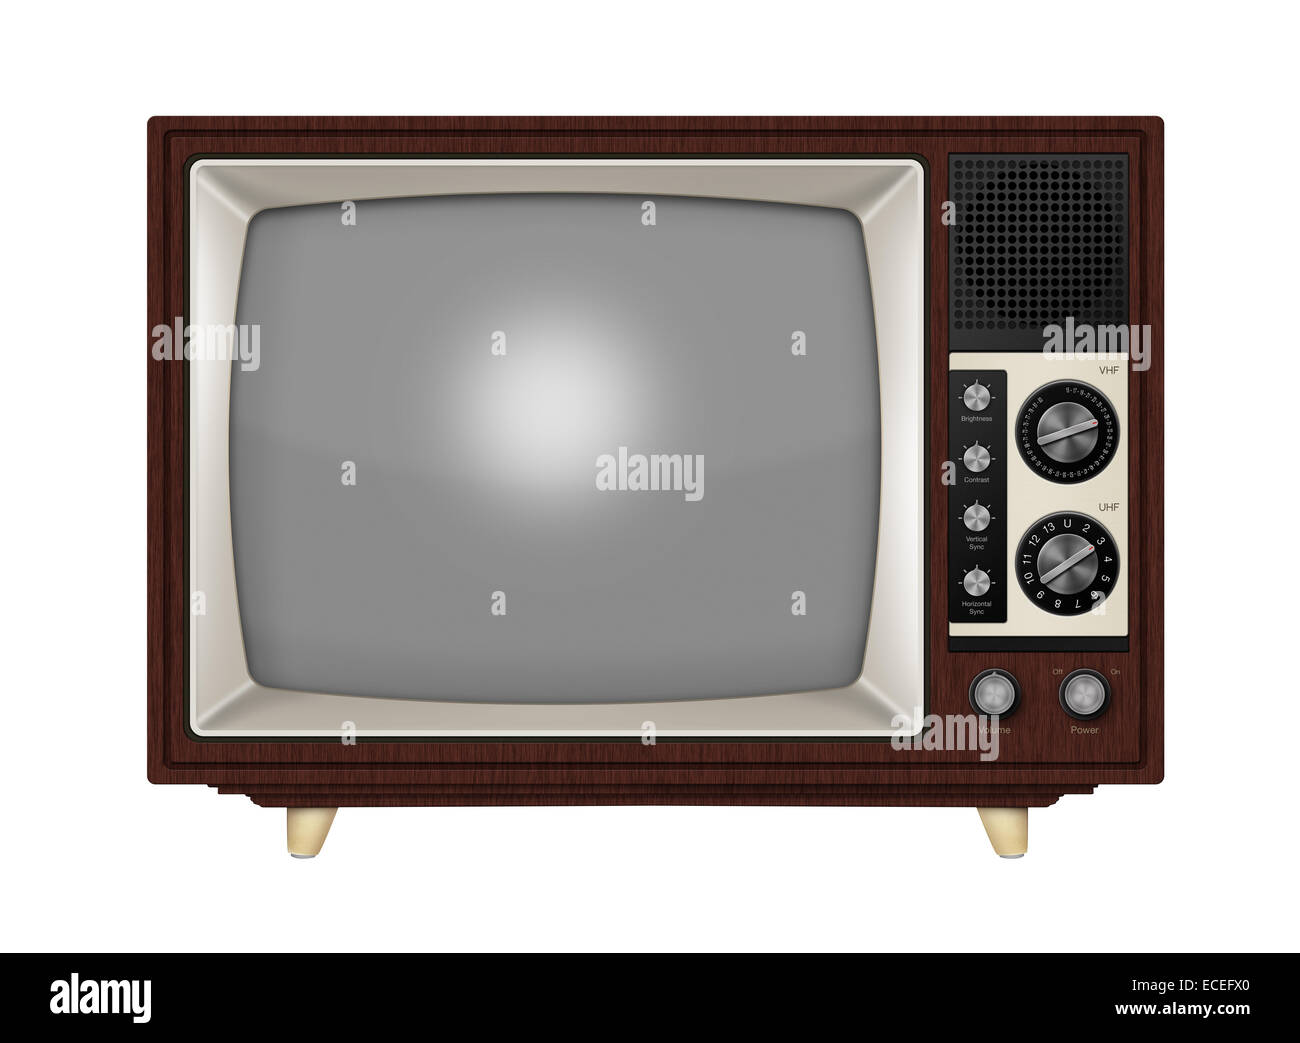 Frequency Tv Old Style Retro Tube Tv With Frequency Knobs And Wooden Style